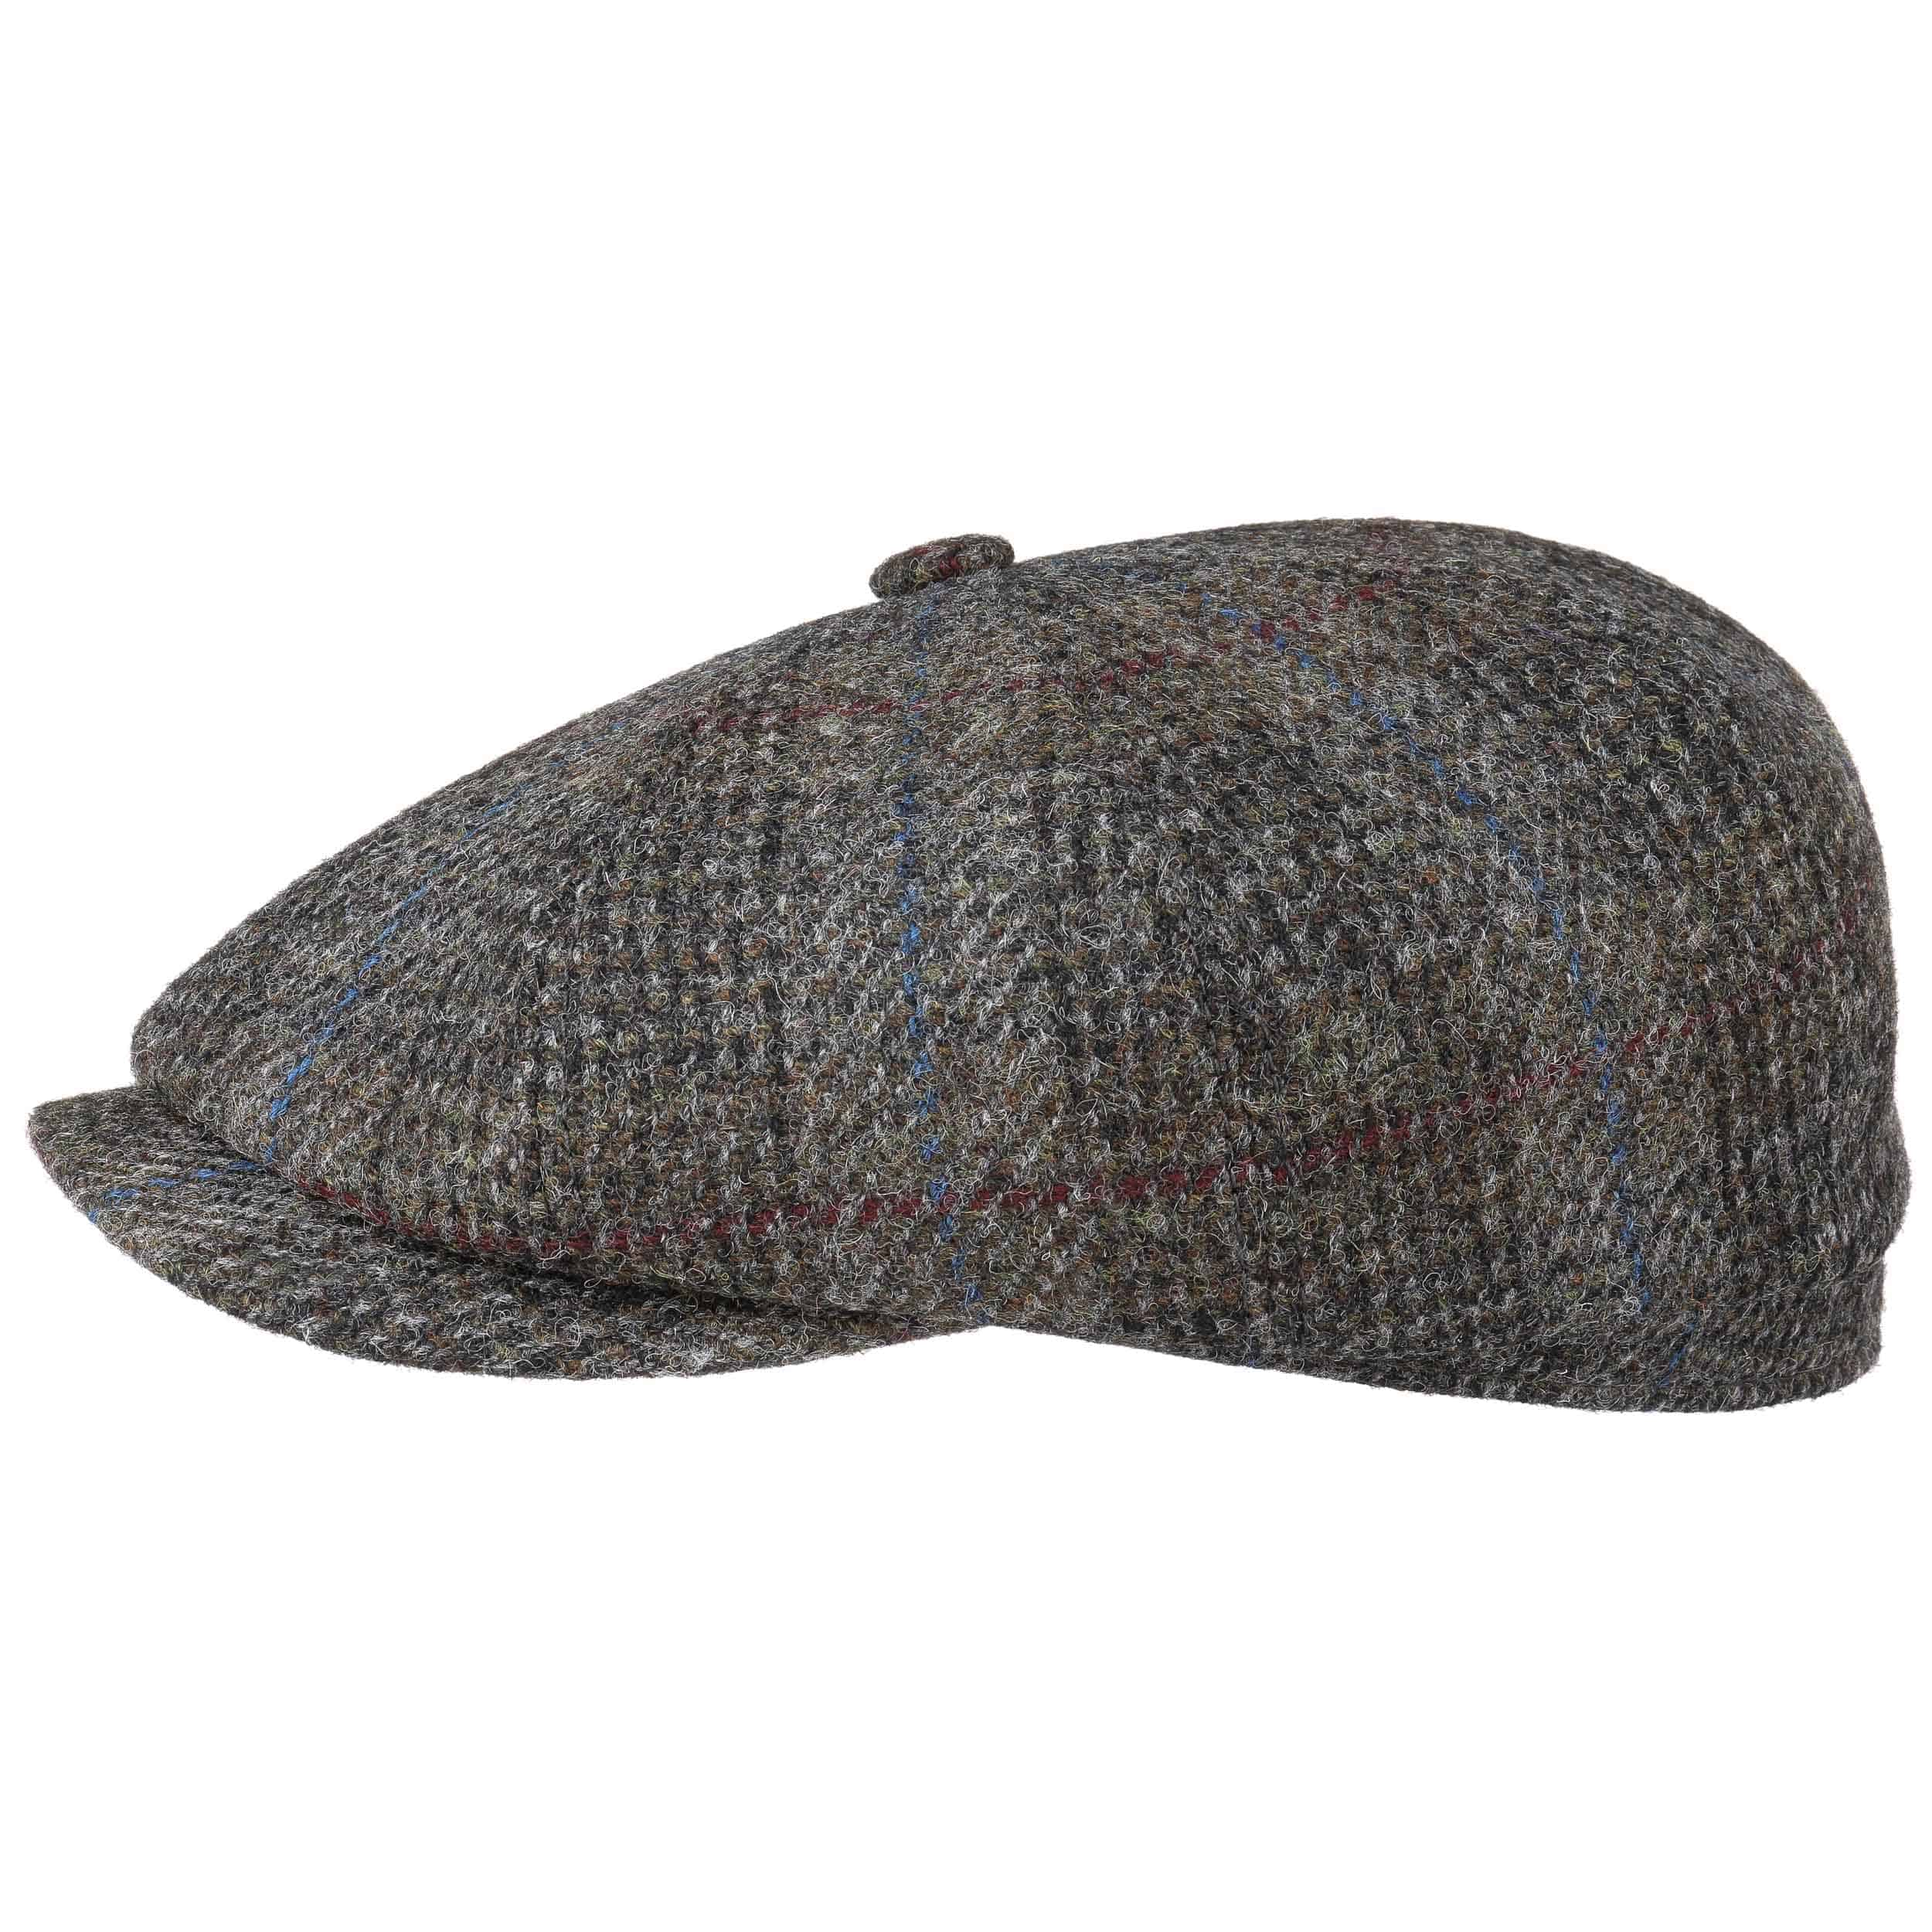 d1fc5bb088a Hatteras Harris Tweed Check Flat Cap by Stetson